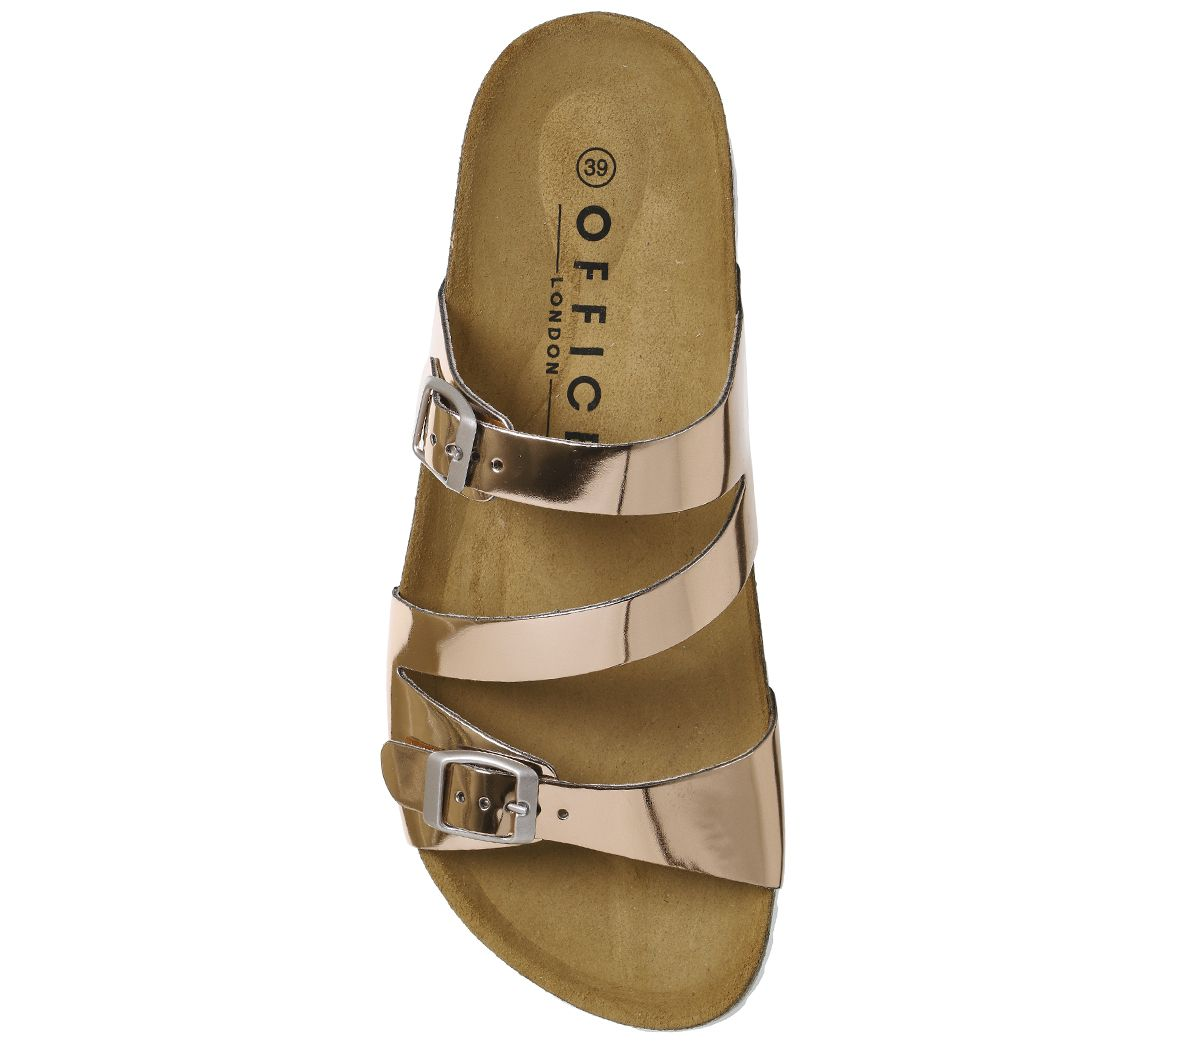 a86ddb71b9af Office Bounty Cross Strap Footbed Sandals Rose Gold - Sandals